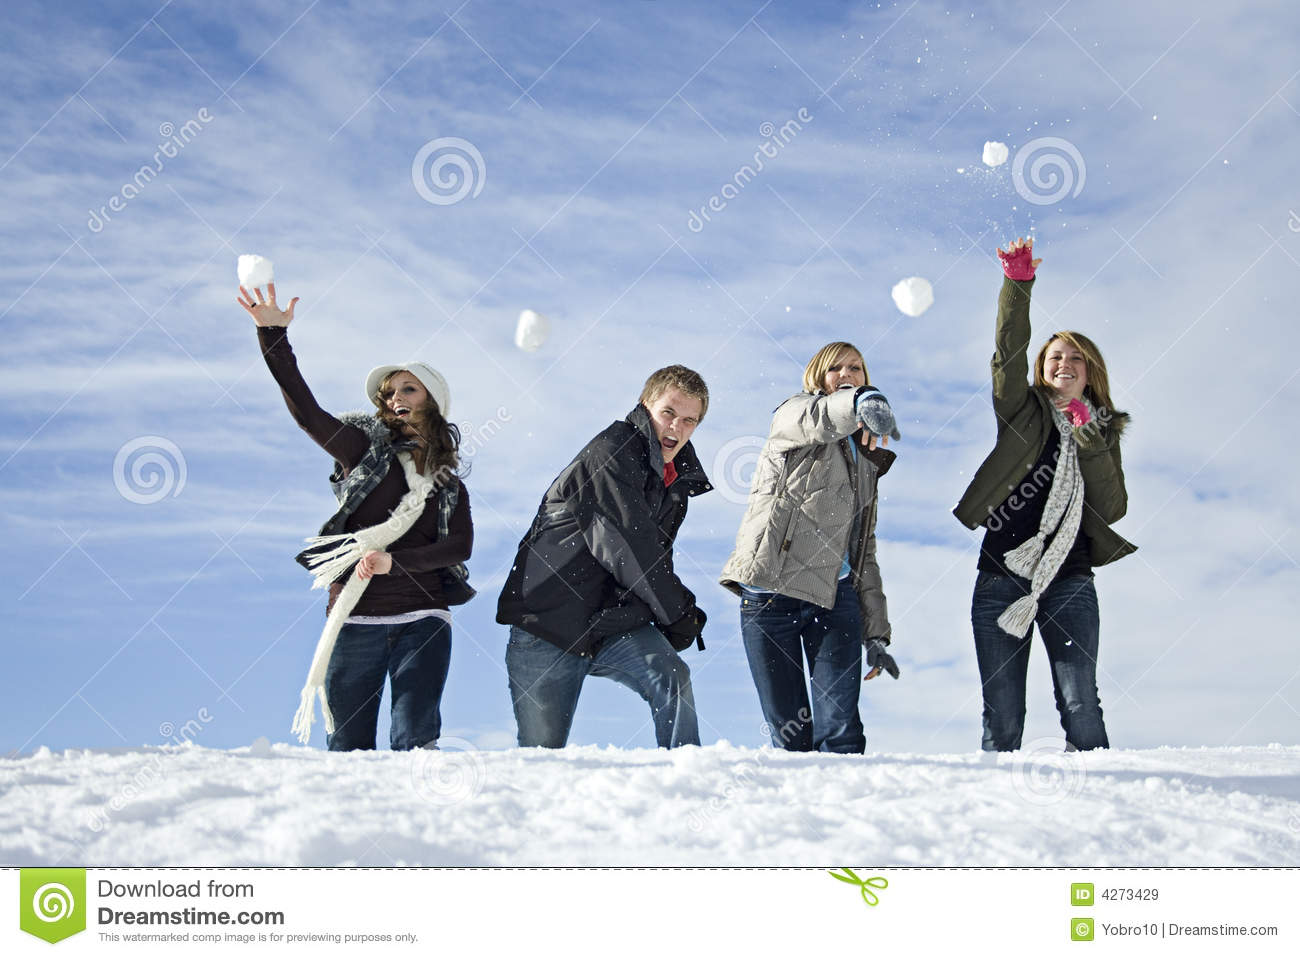 snowball fight royalty free stock images image 4273429